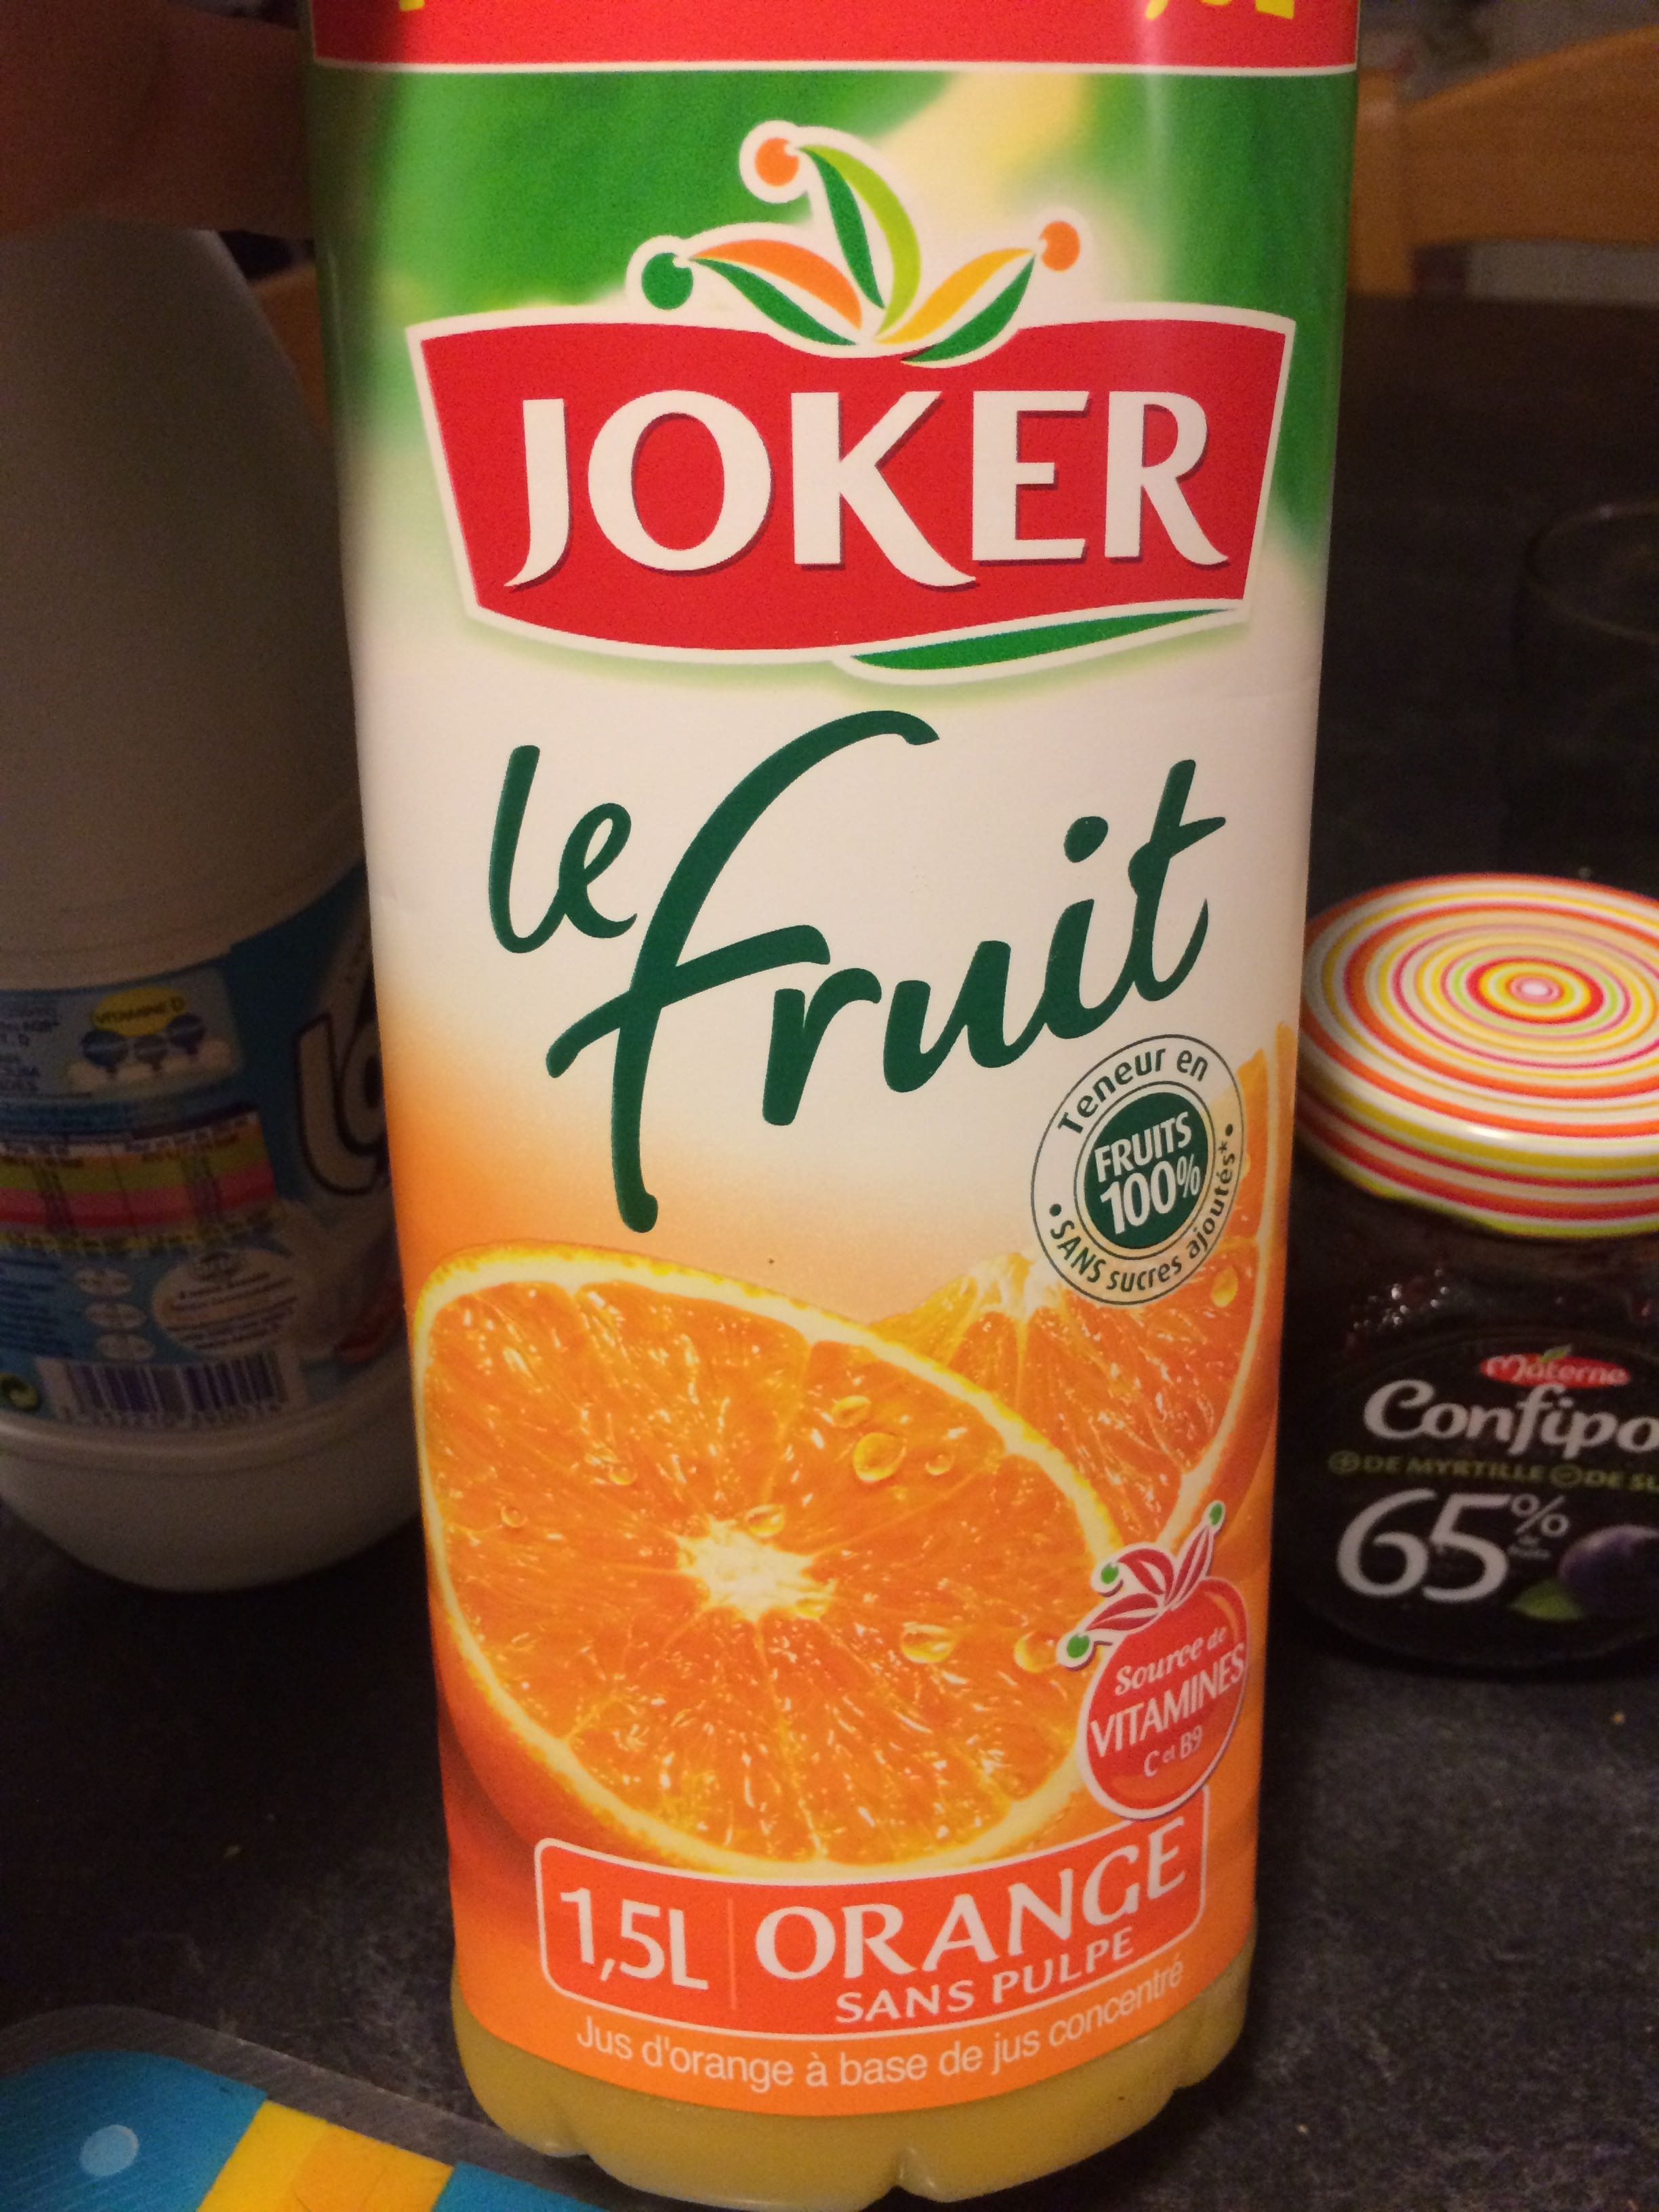 Le Fruit - Orange sans pulpe - Product - fr